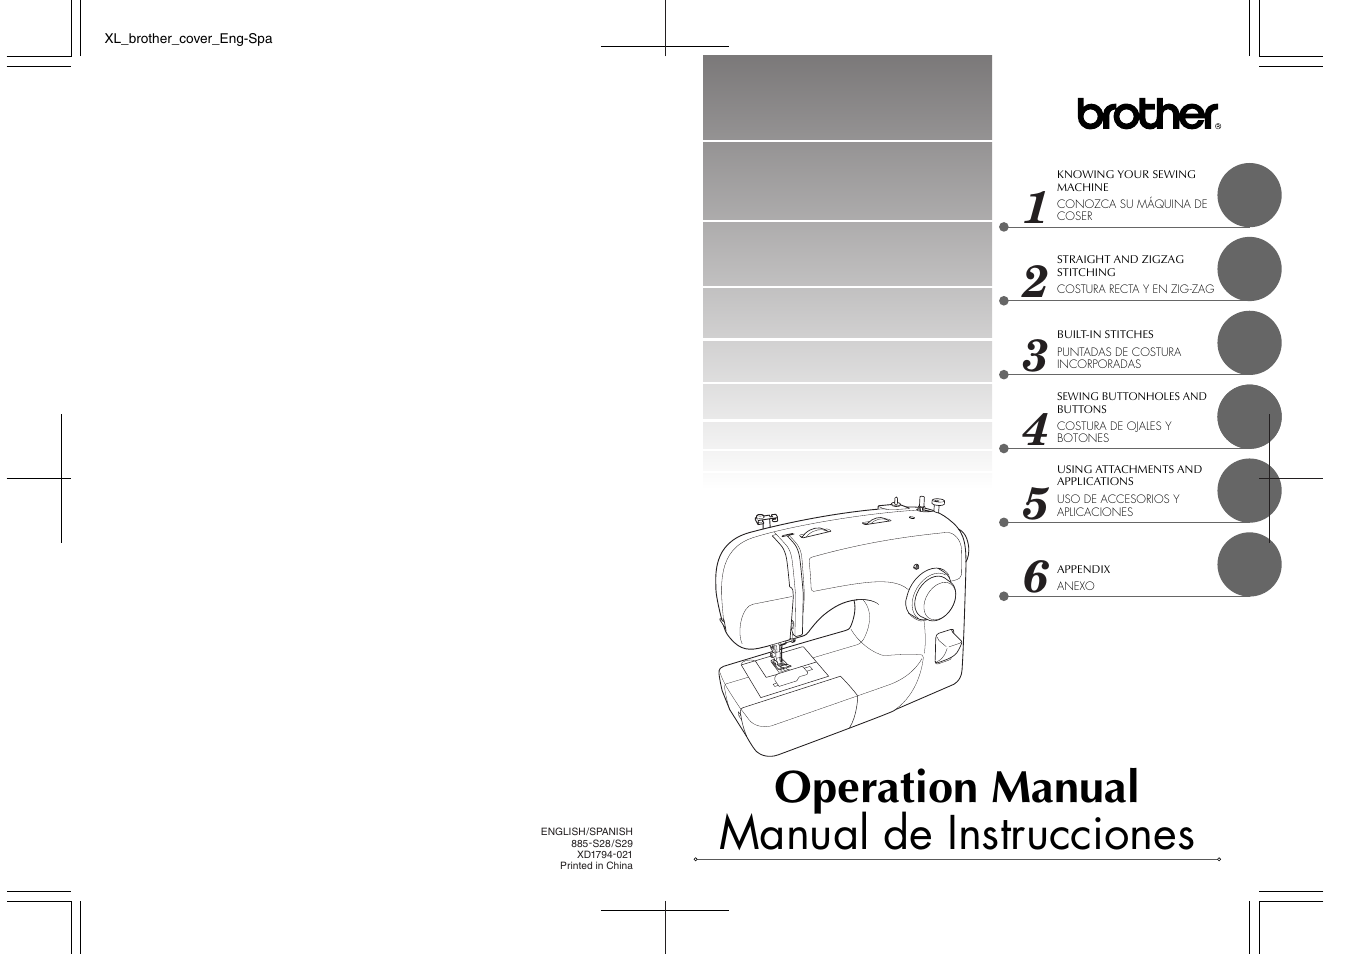 Brother BM-3600 User Manual   82 pages   Also for: XL-3750, BM-2700, LS-590